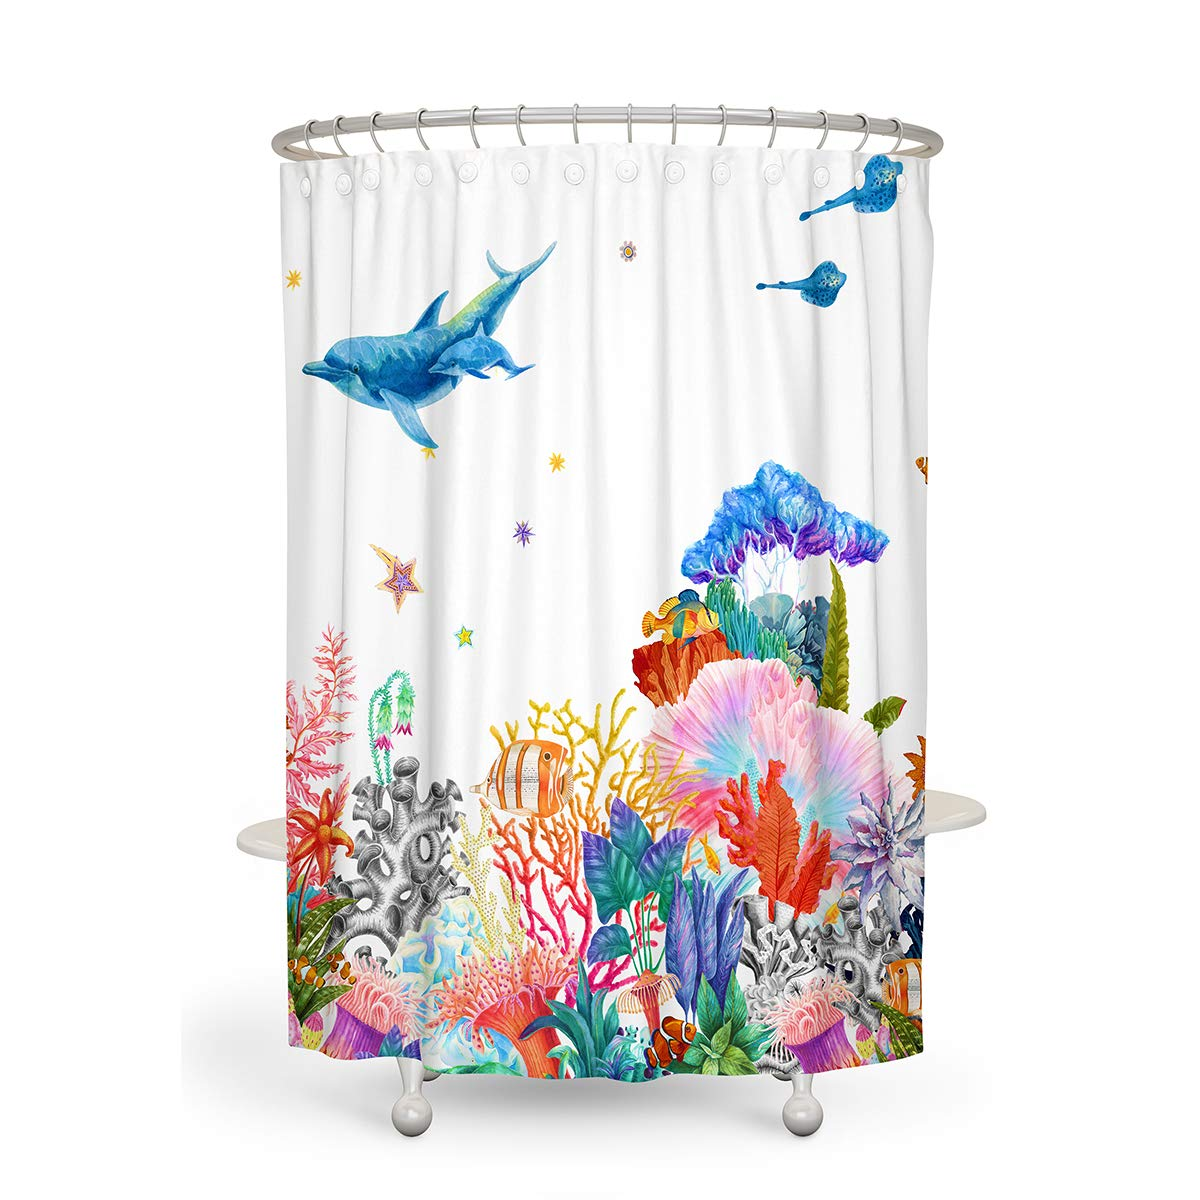 MACOFE Shower Curtain 3D Shower Curtain Ocean Shower Curtain Mildew Resistant Polyester Fabric, Waterproof, Machine Washable,Hooks Included,Bathroom Decor Original Design Hand Drawing,71x71in